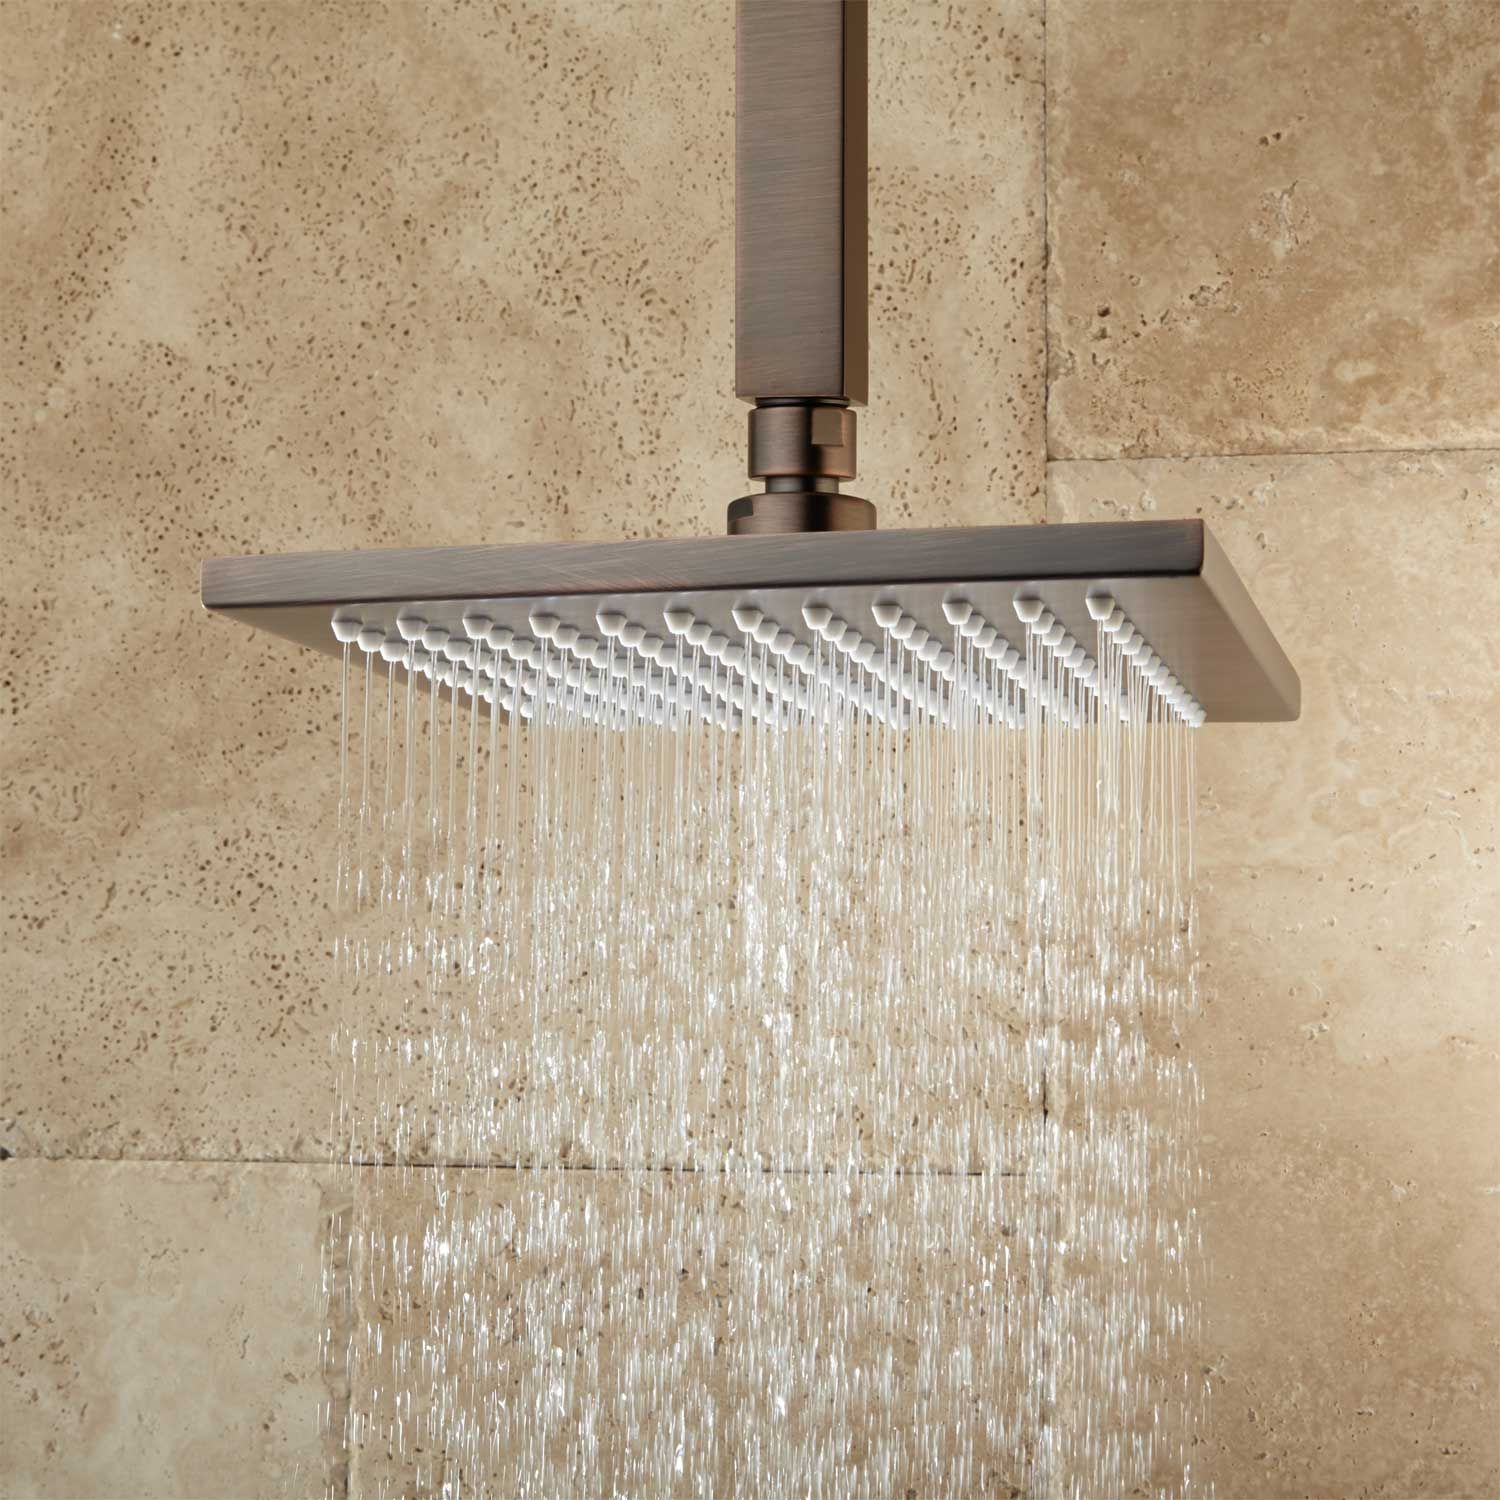 Oversized Square Stainless Steel Shower Head Rain Showers